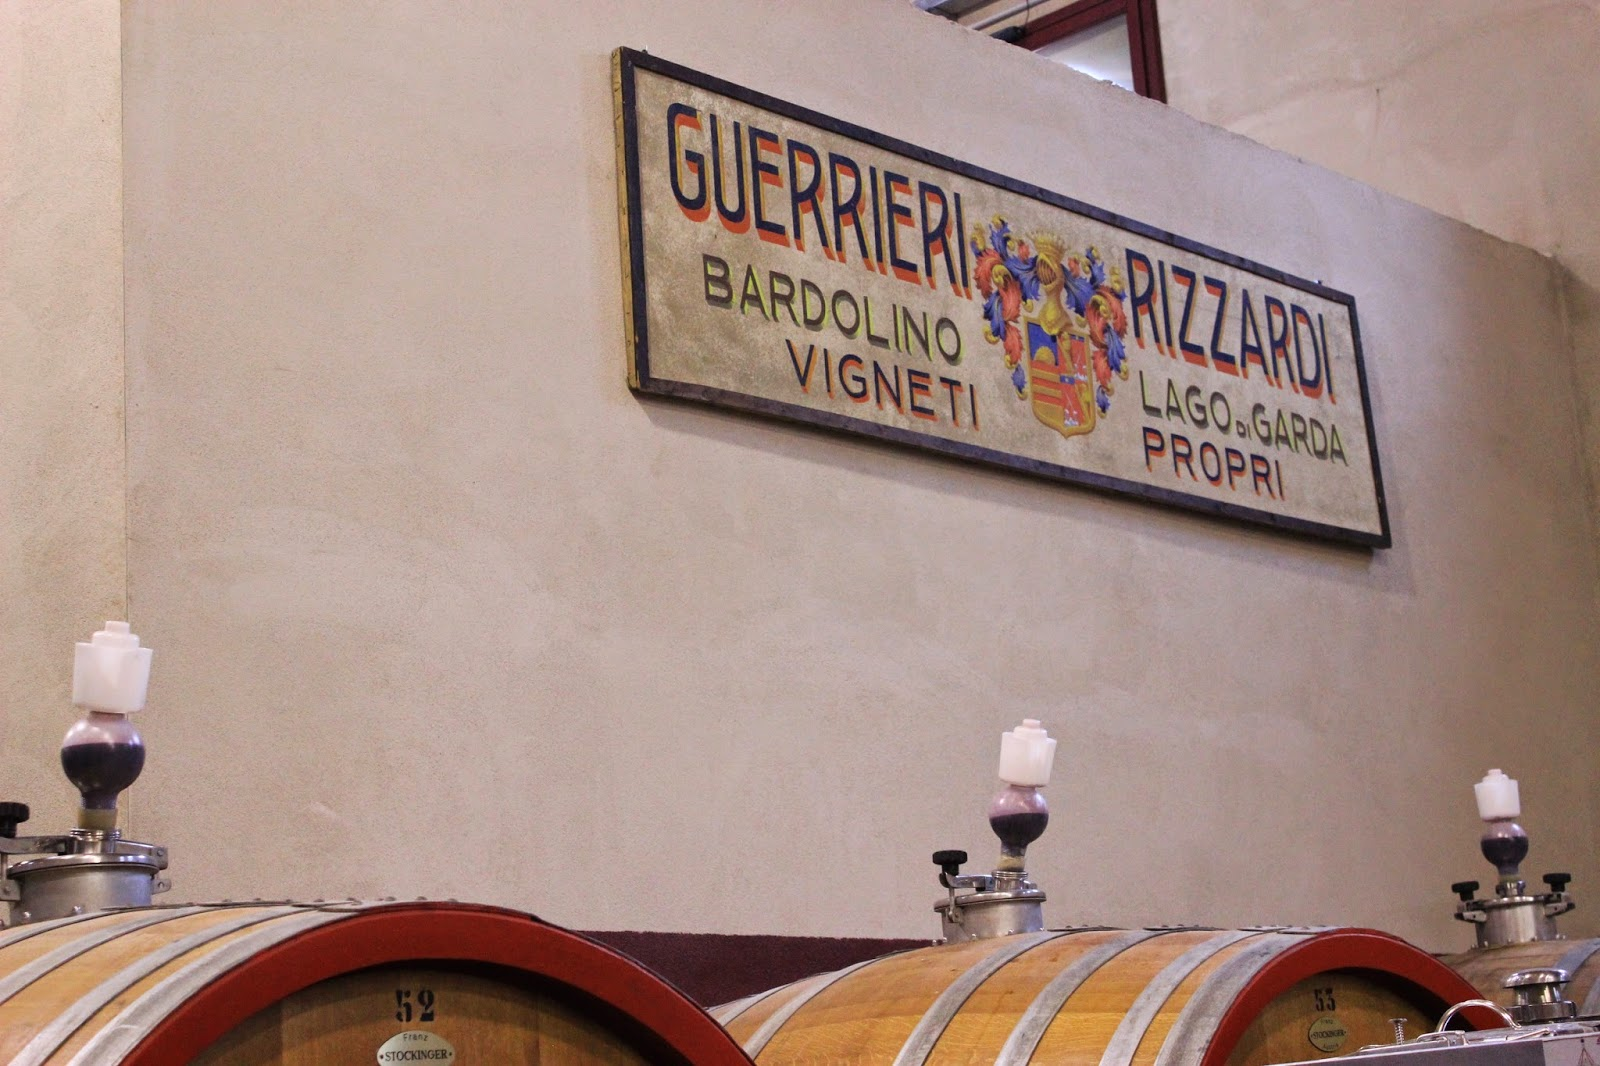 Wine cellar of Guerrieri Rizzardi